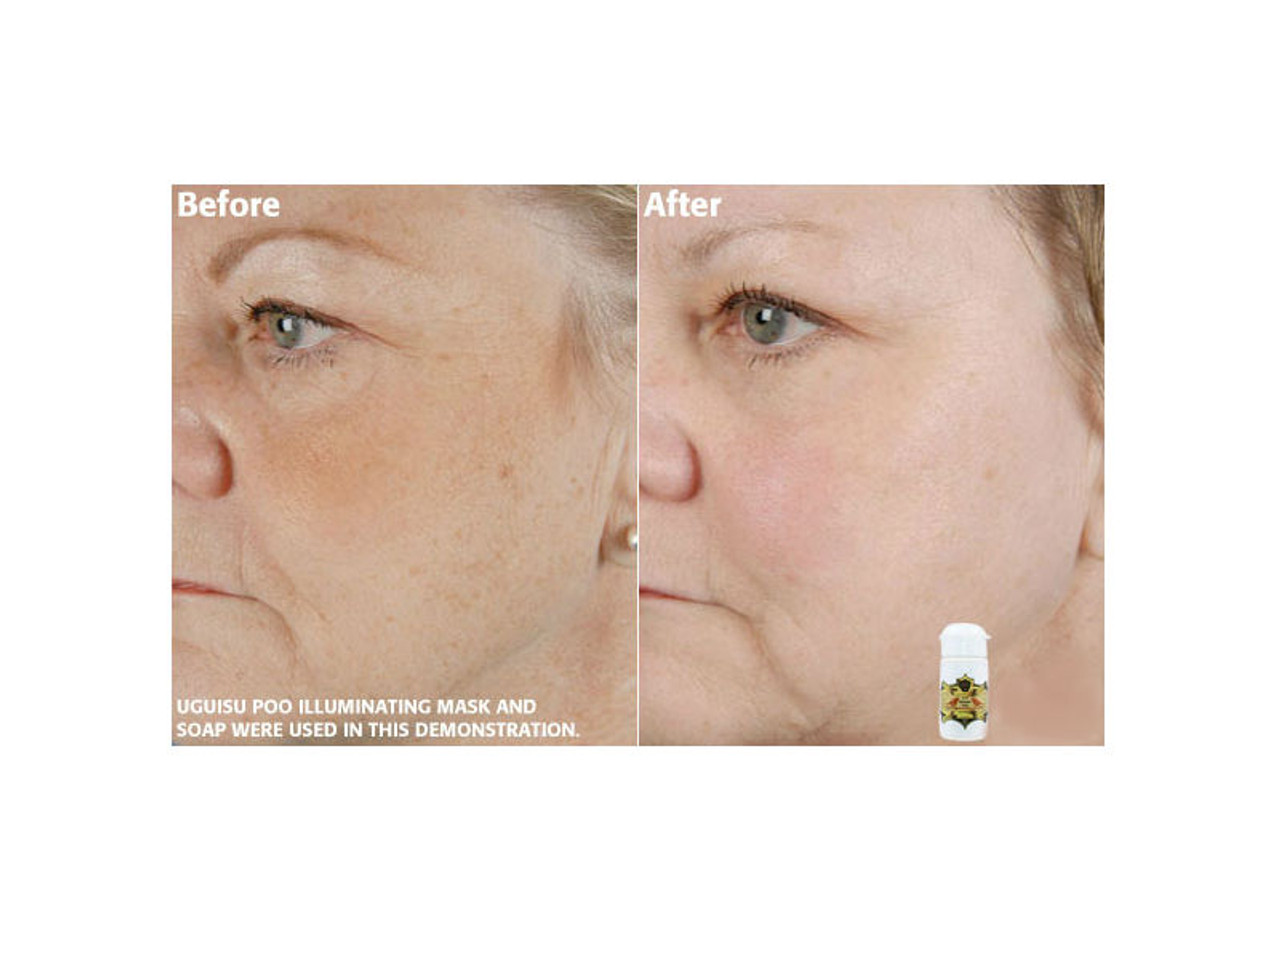 Before and after pictures of the Illuminating Mask